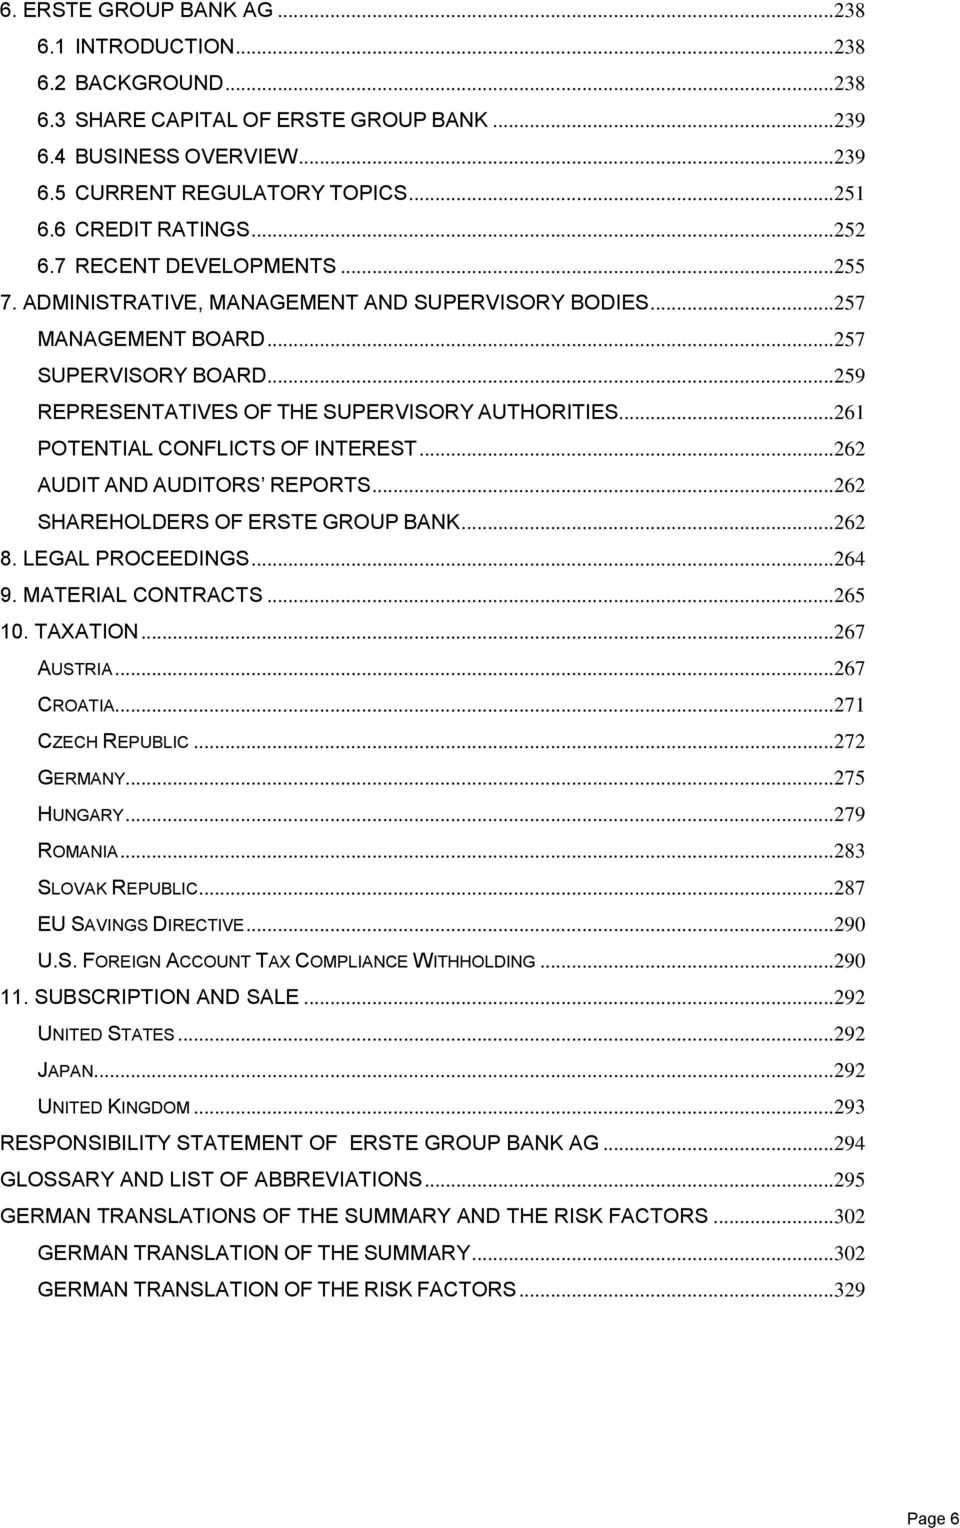 ..259 REPRESENTATIVES OF THE SUPERVISORY AUTHORITIES...261 POTENTIAL CONFLICTS OF INTEREST...262 AUDIT AND AUDITORS REPORTS...262 SHAREHOLDERS OF ERSTE GROUP BANK...262 8. LEGAL PROCEEDINGS... 264 9.